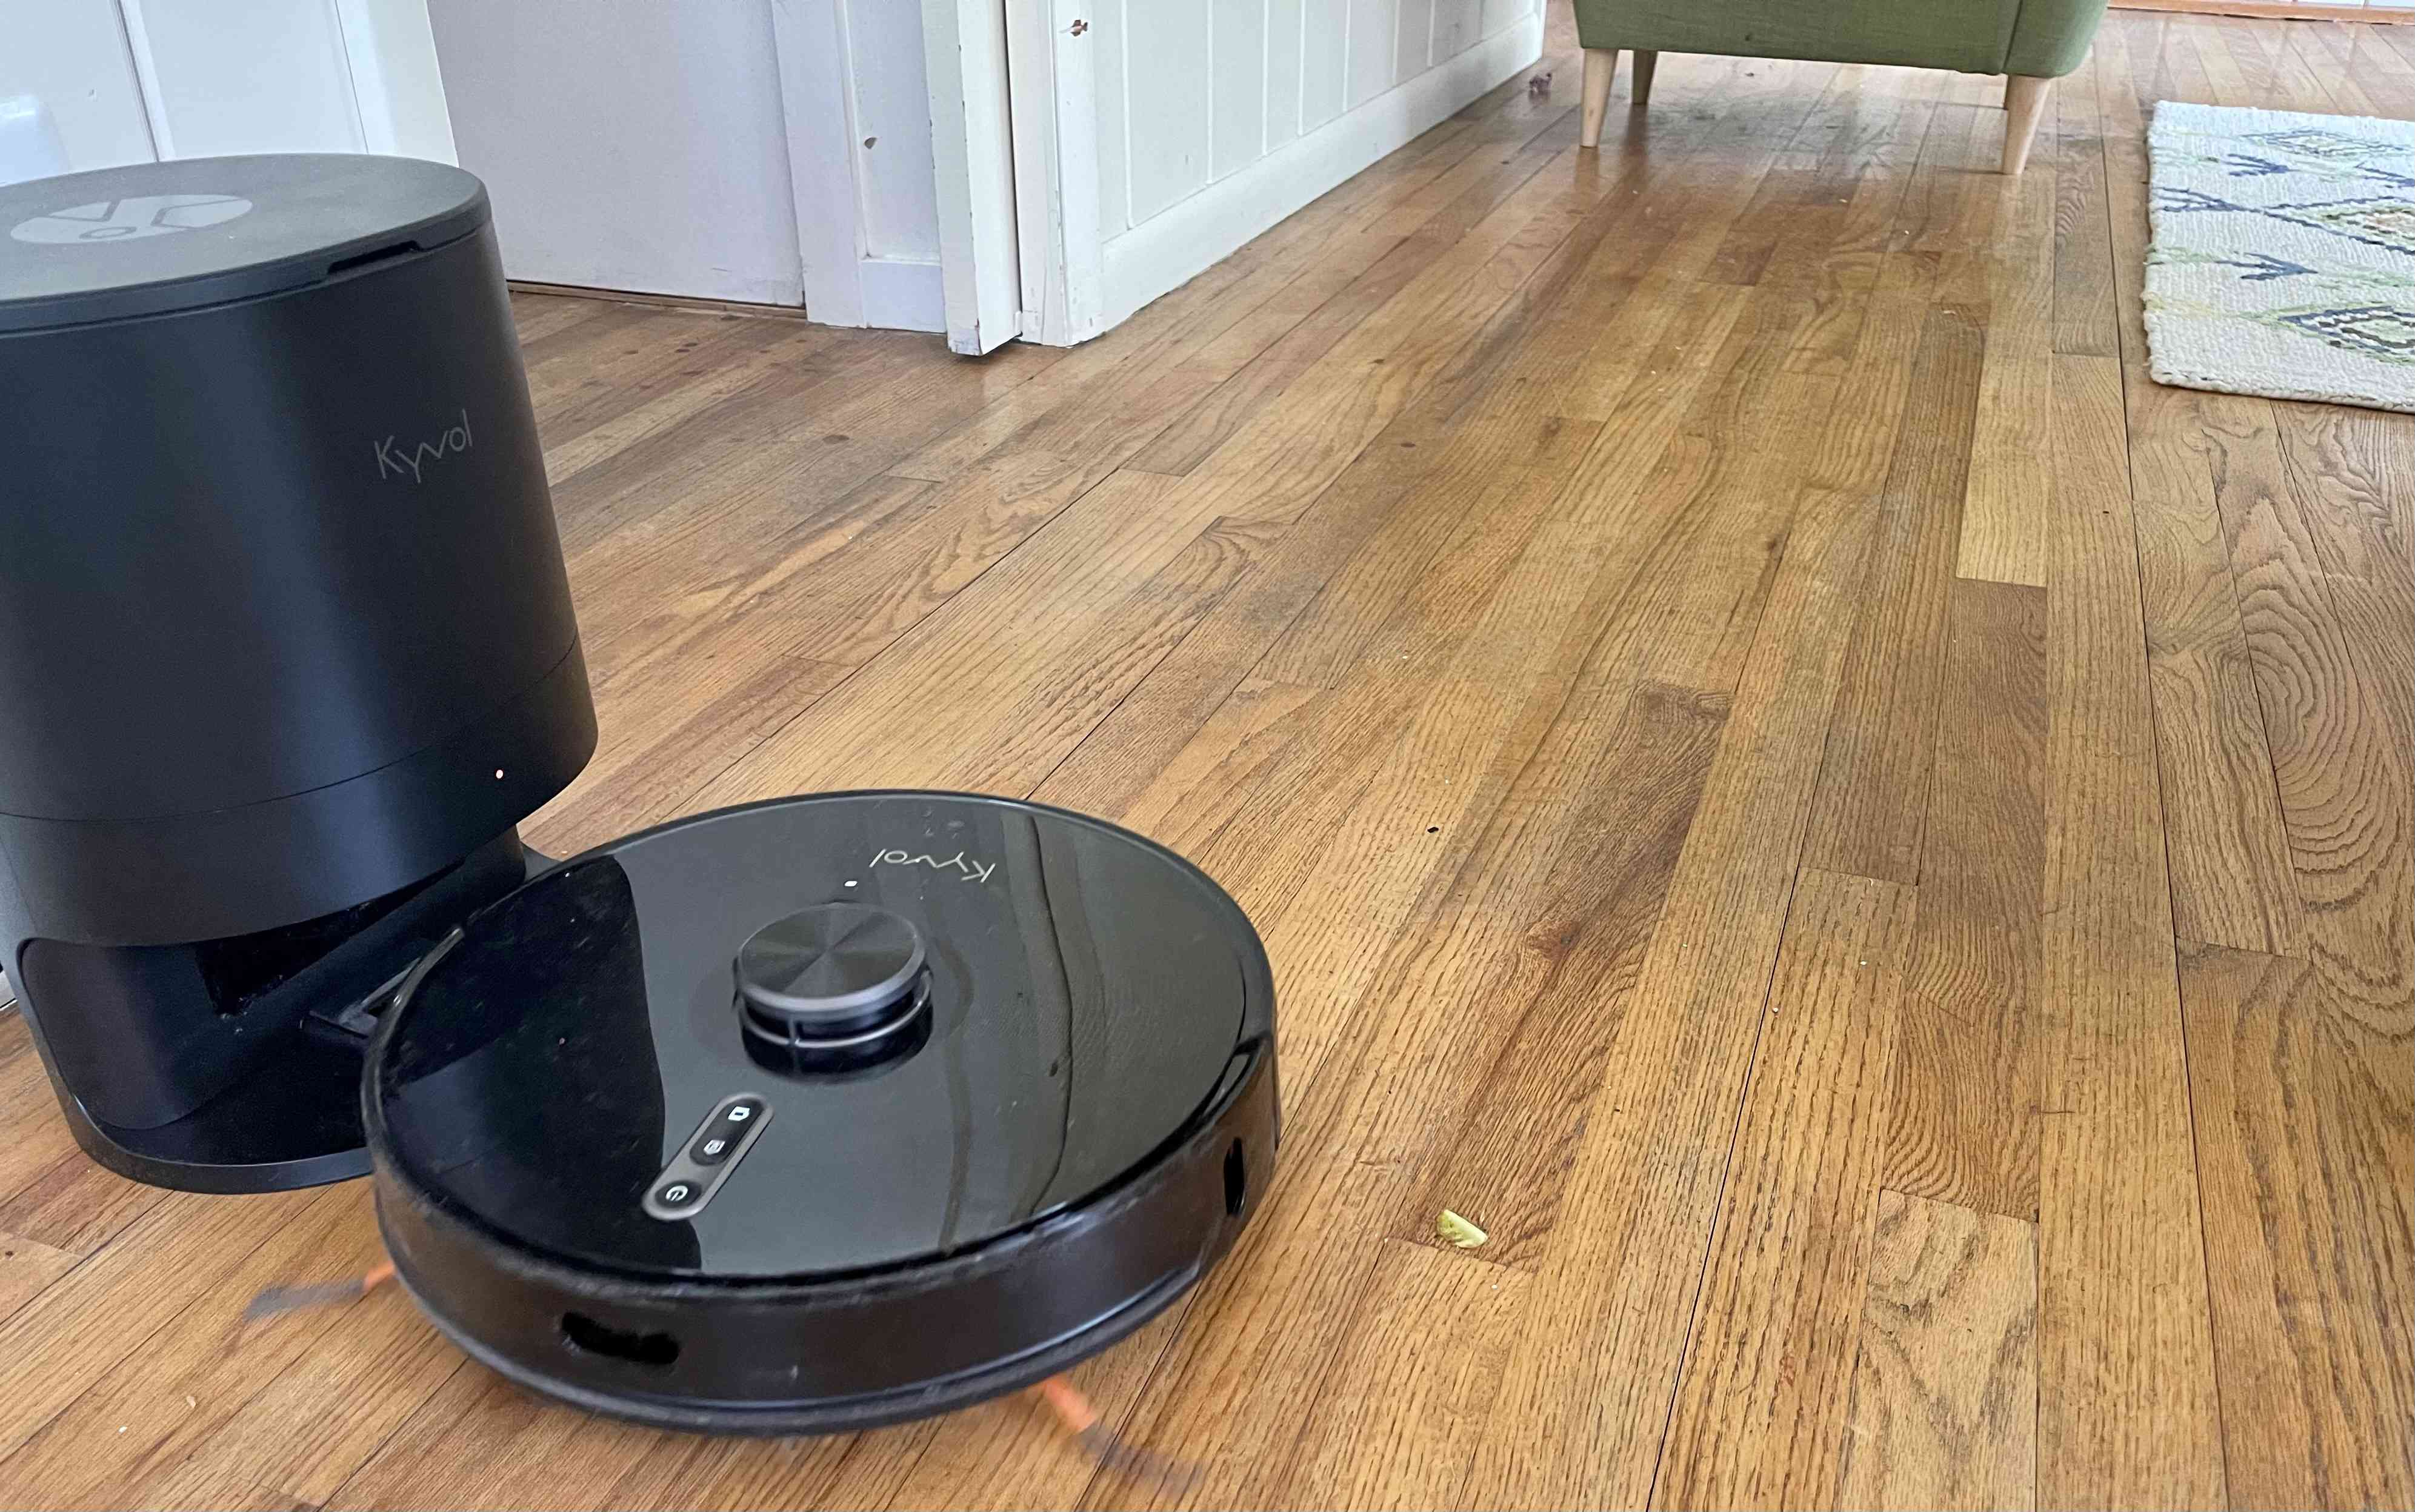 The Cybovac S31 Cleaning Robot on a hardwood floor